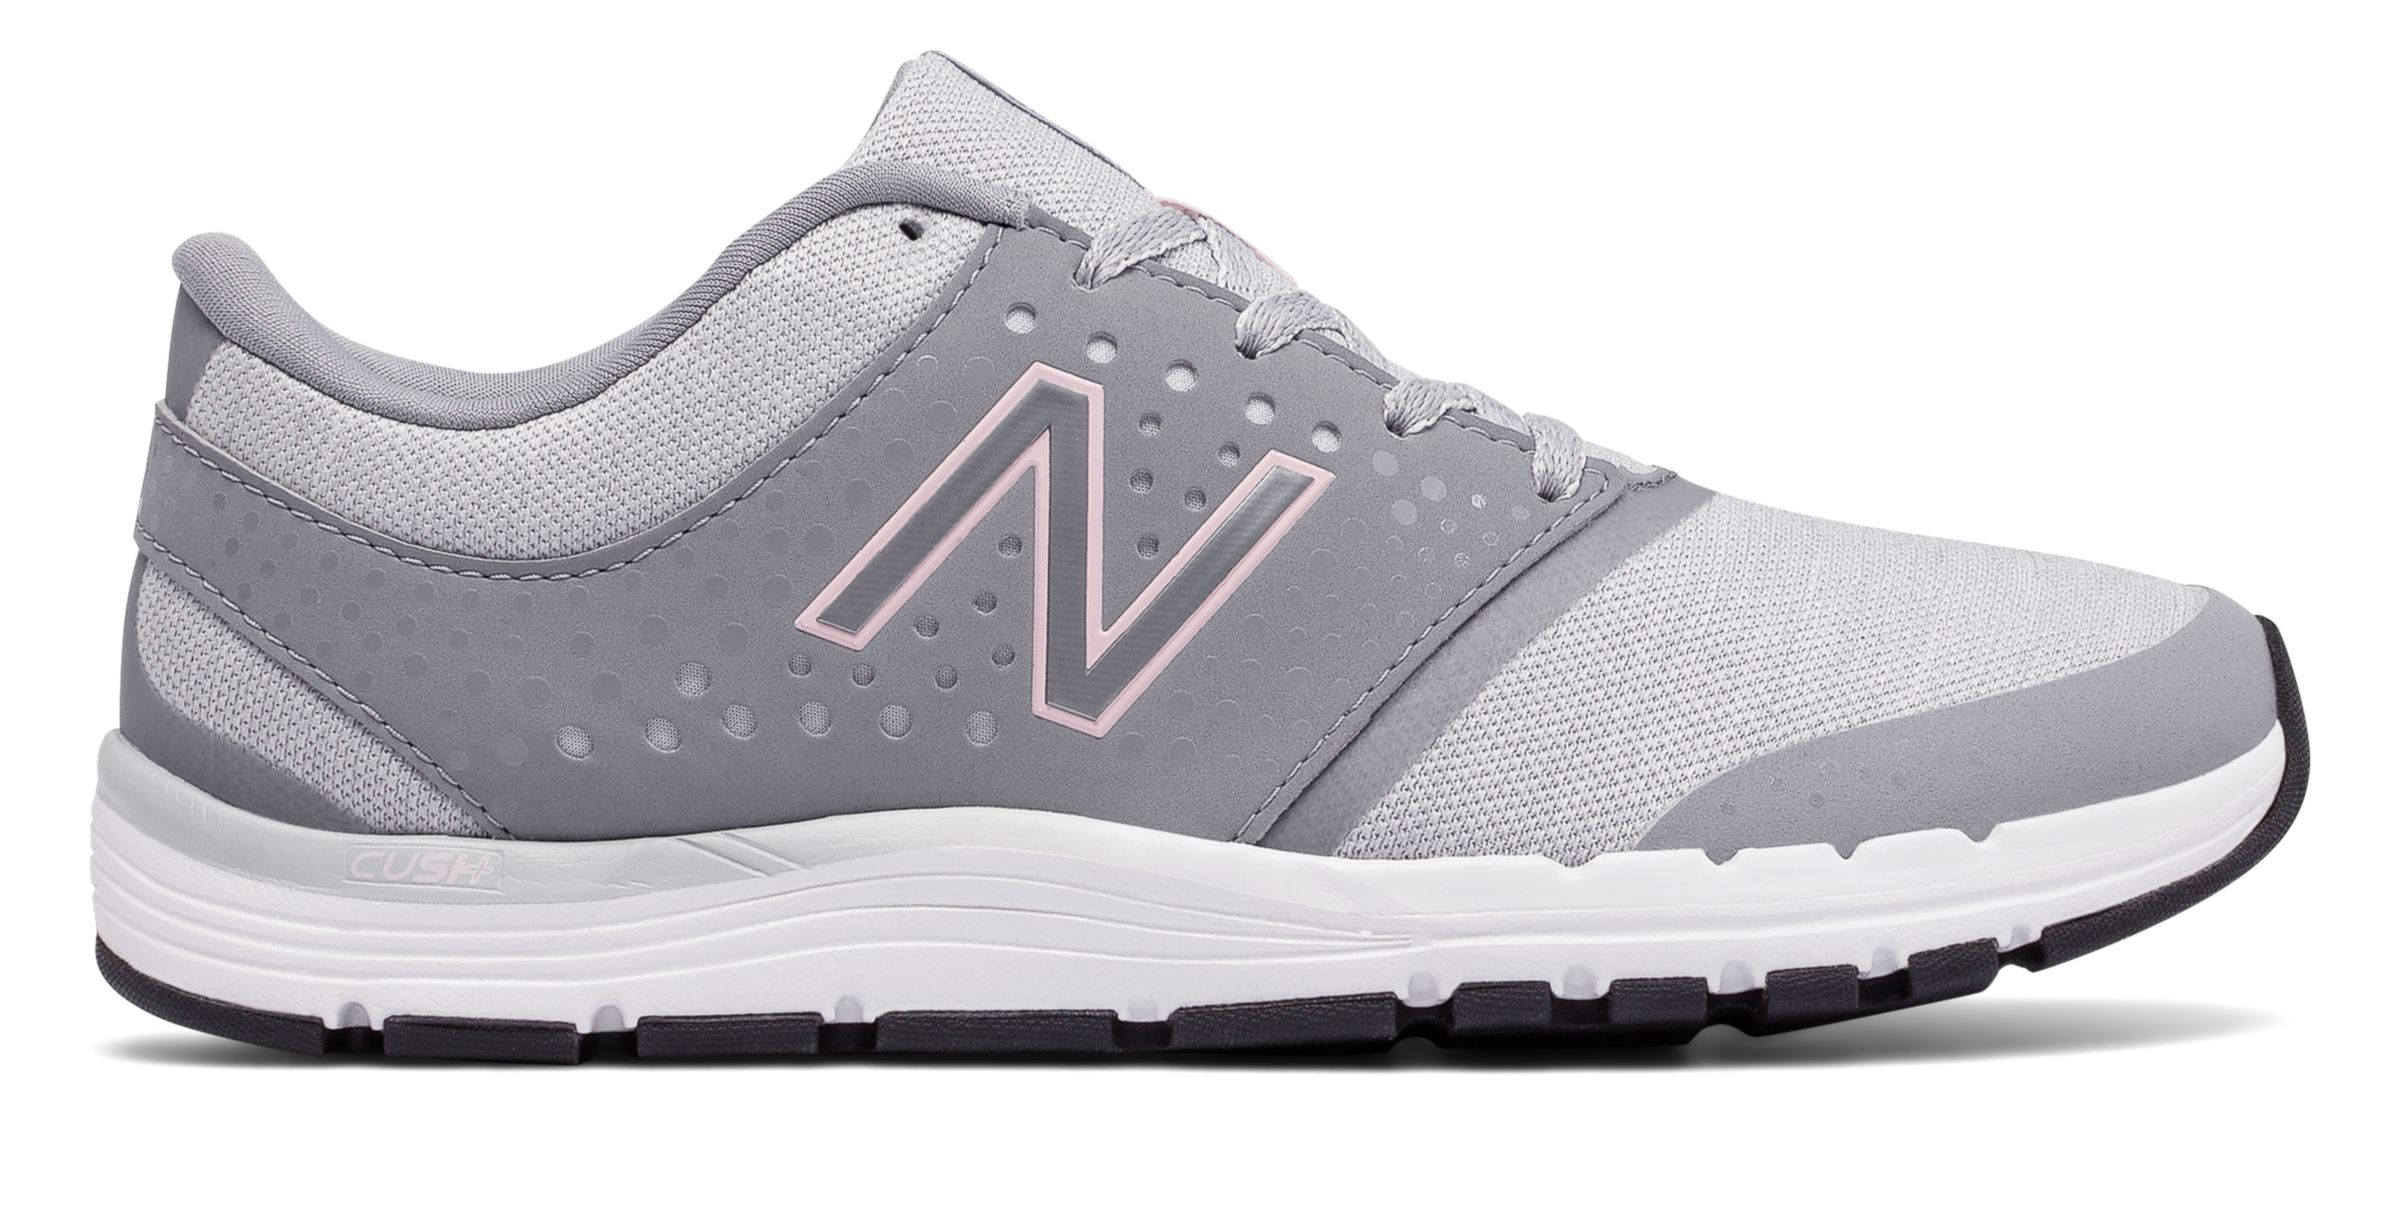 NB New Balance 577v4 Heathered Trainer, Grey with Light Pink & Light Grey